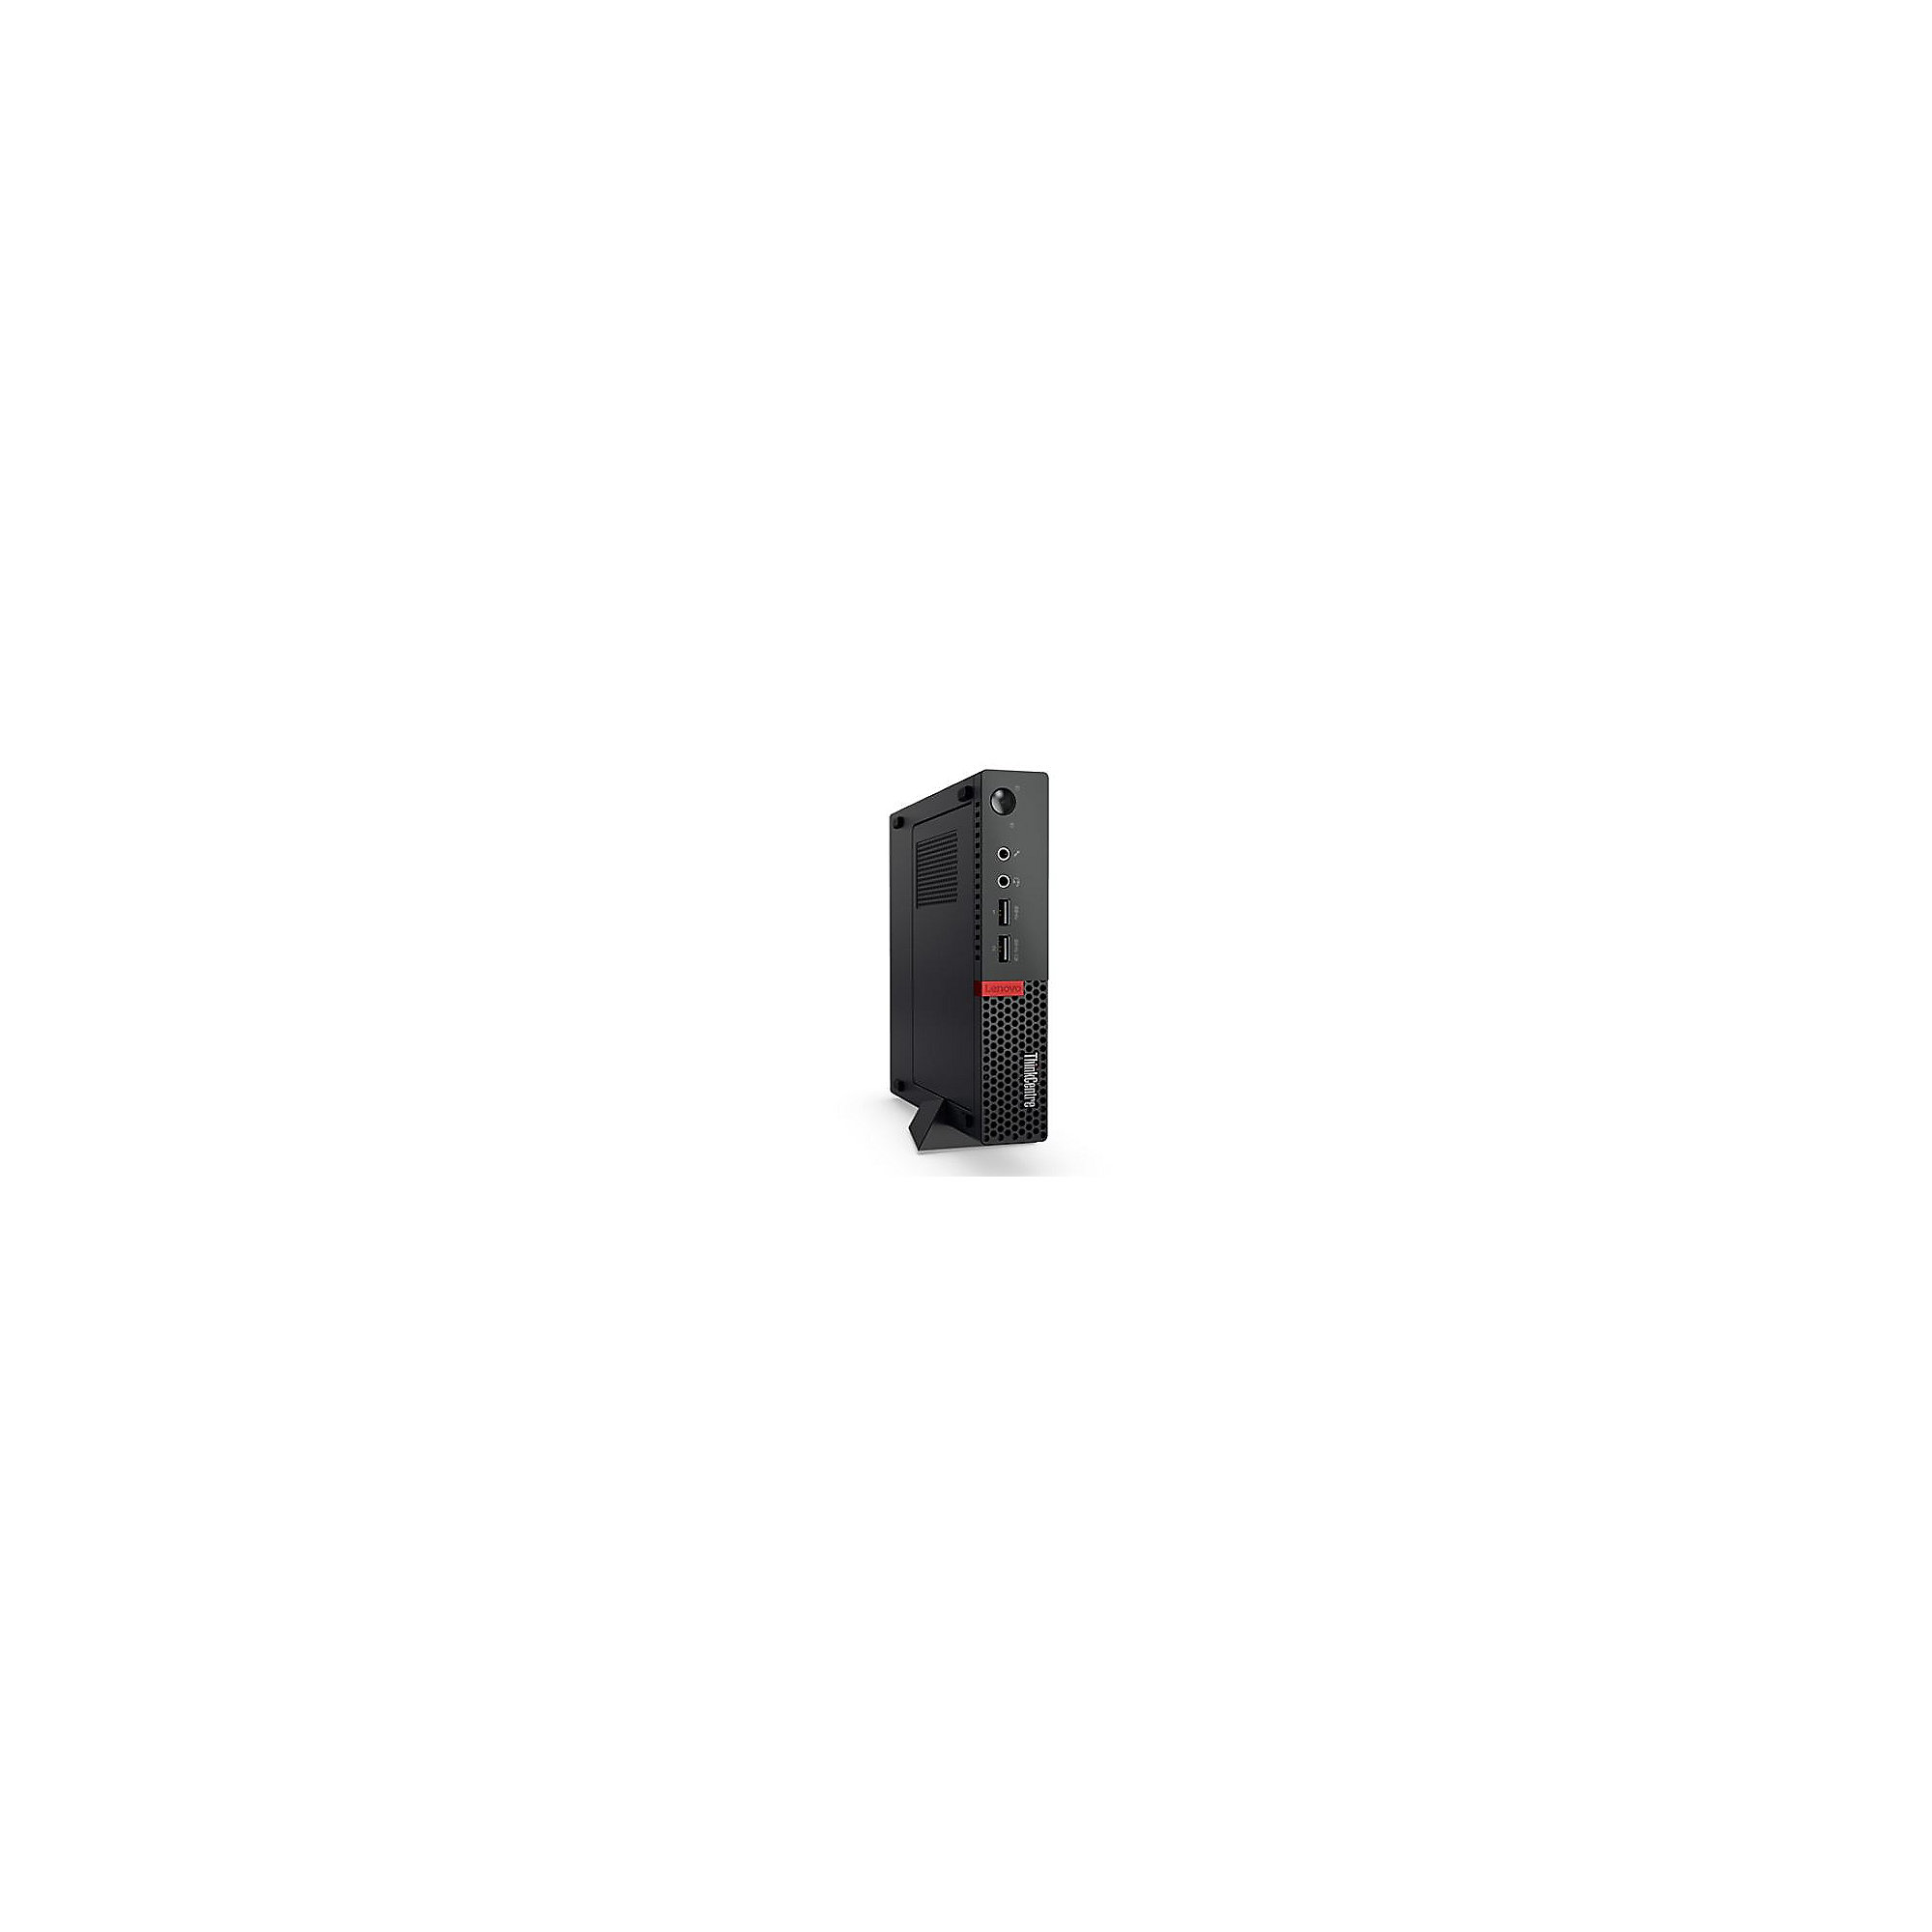 Lenovo ThinkCentre M710q Tiny 10MR001SGE - G4600T 4GB/500GB W10Pro